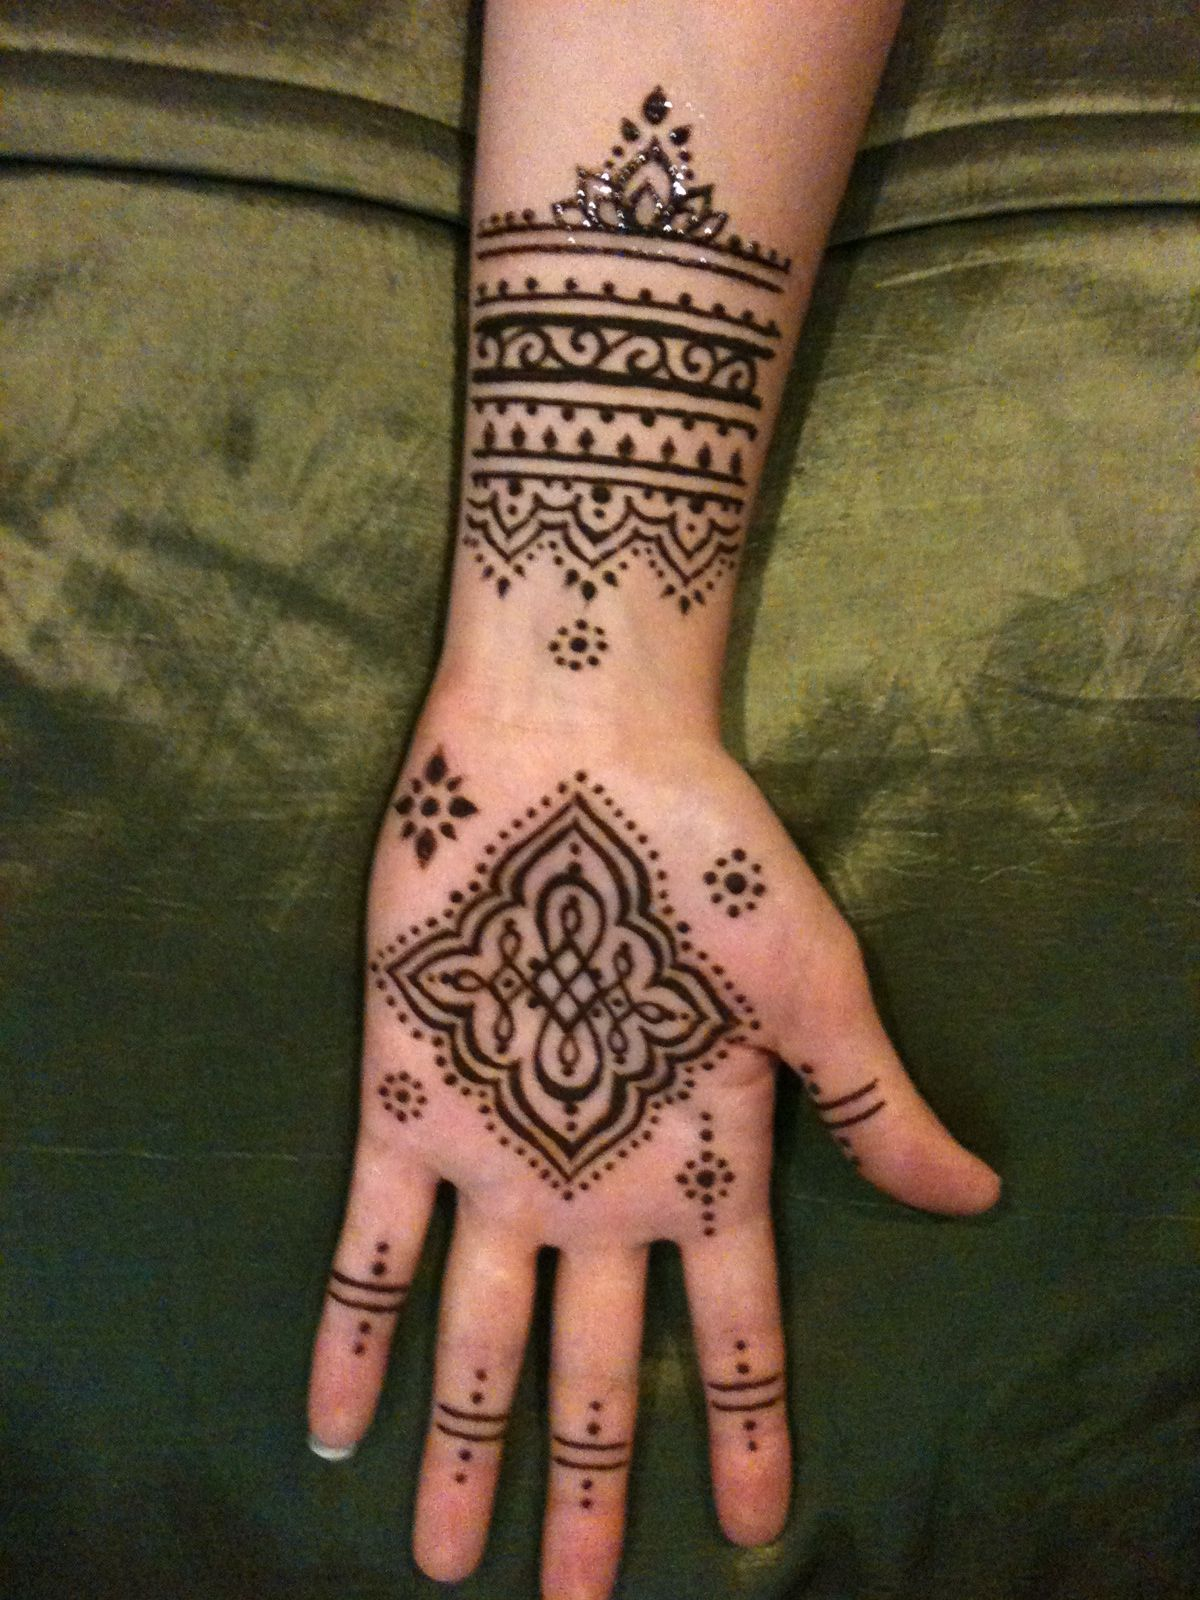 Henna Tattoo Vancouver Bc : Henna done by hennakim my style hennas and tattoo